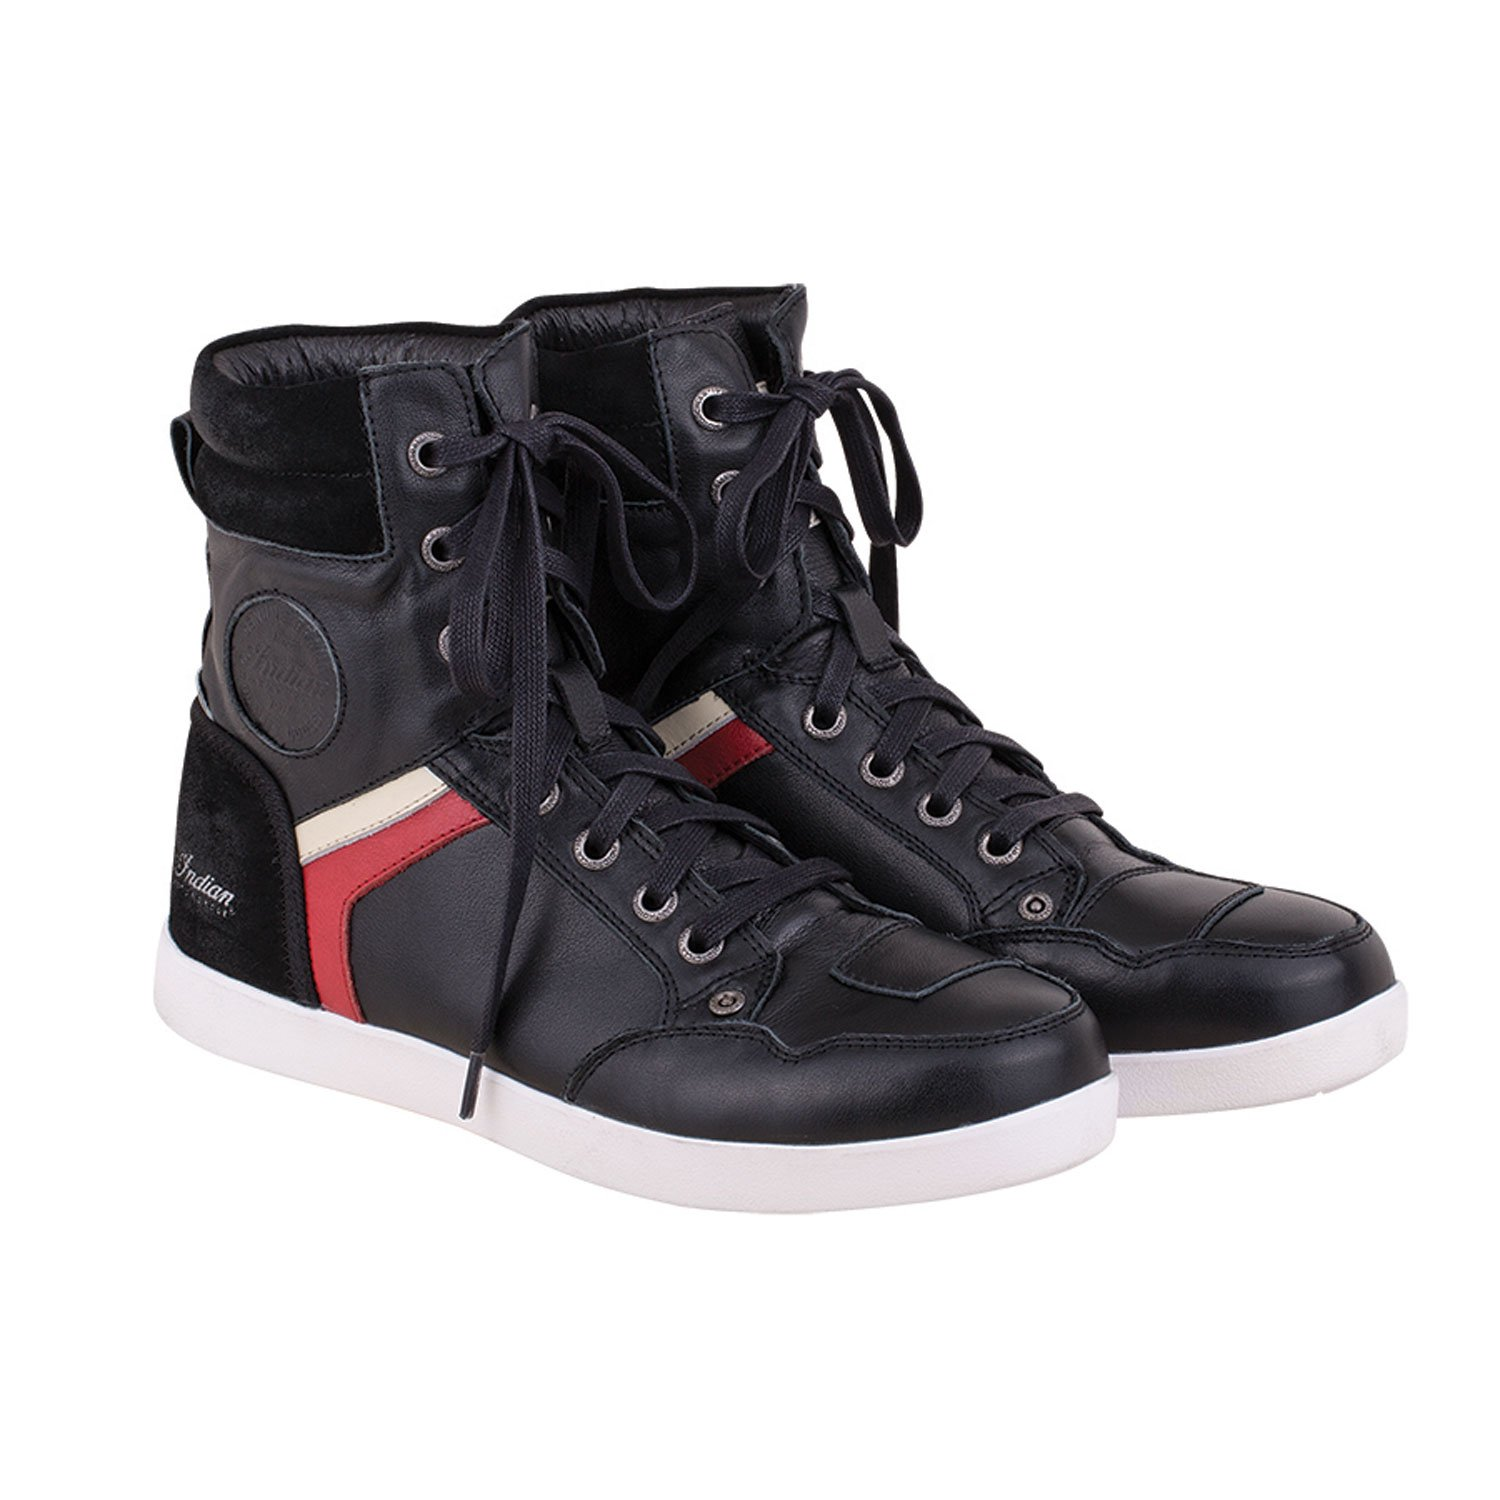 Men's Leather High-Top Riding Sneakers, Black